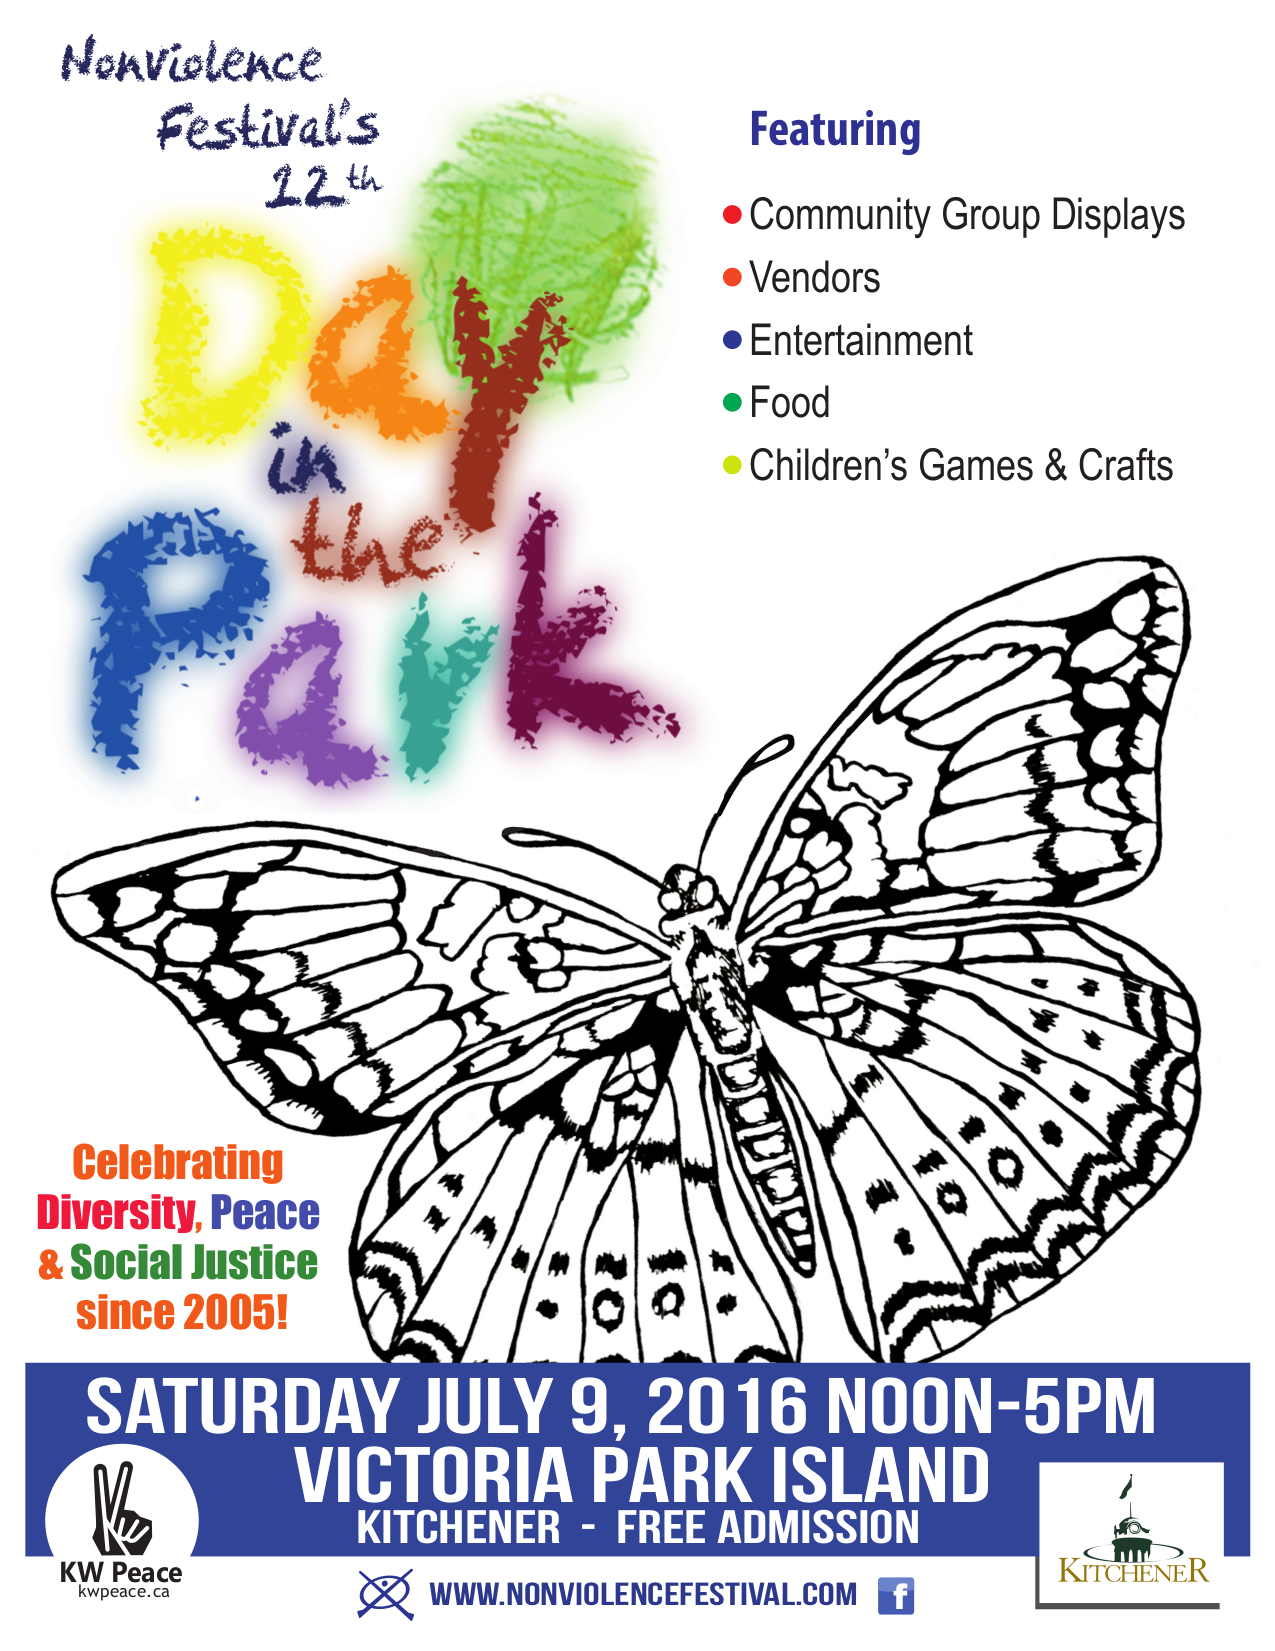 Nonviolence Festival's 12th Day In The Park, Saturday July 9, 2016 Noon-5pm Victoria Park Island, Kitchener - Free Admission